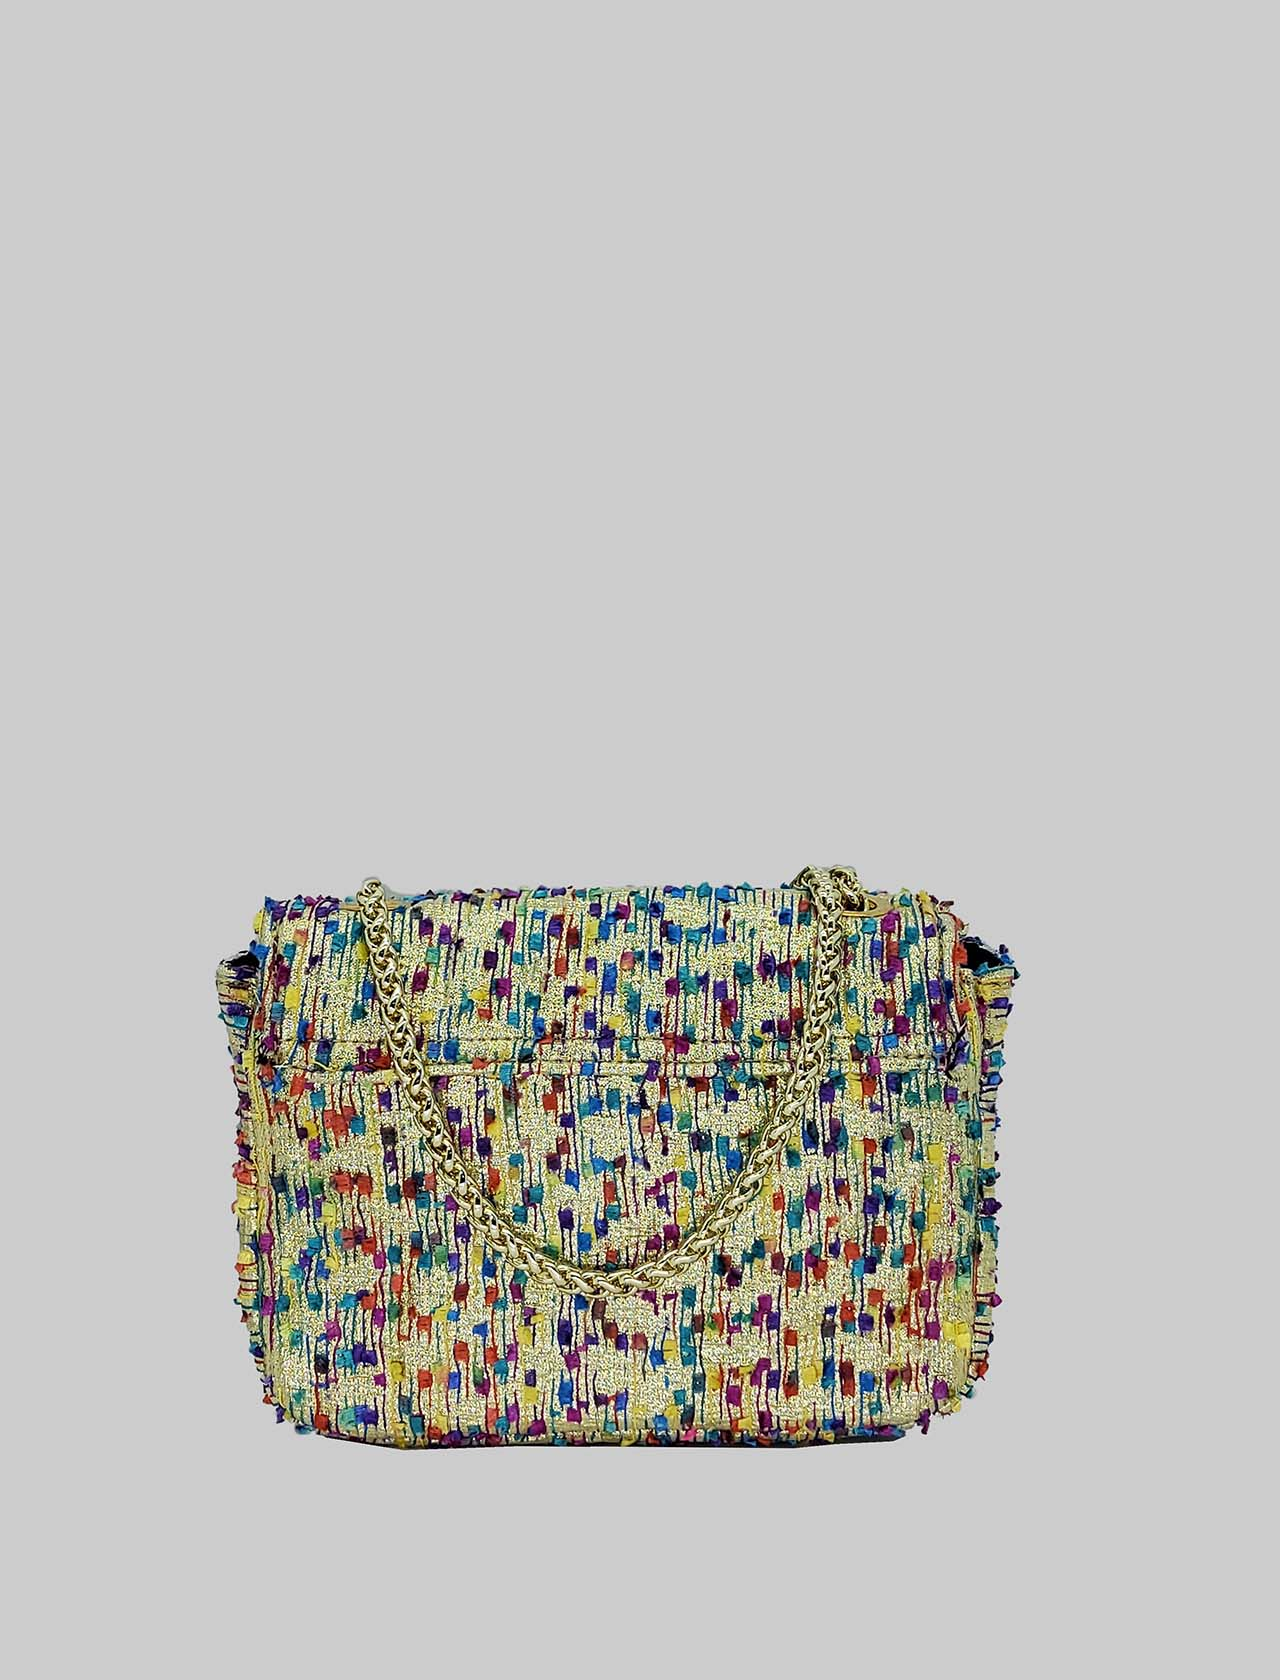 Women's Bags Clutch Bag in Powder Fabric with Gold Chain Kassiopea | Bags and backpacks | URIEL301